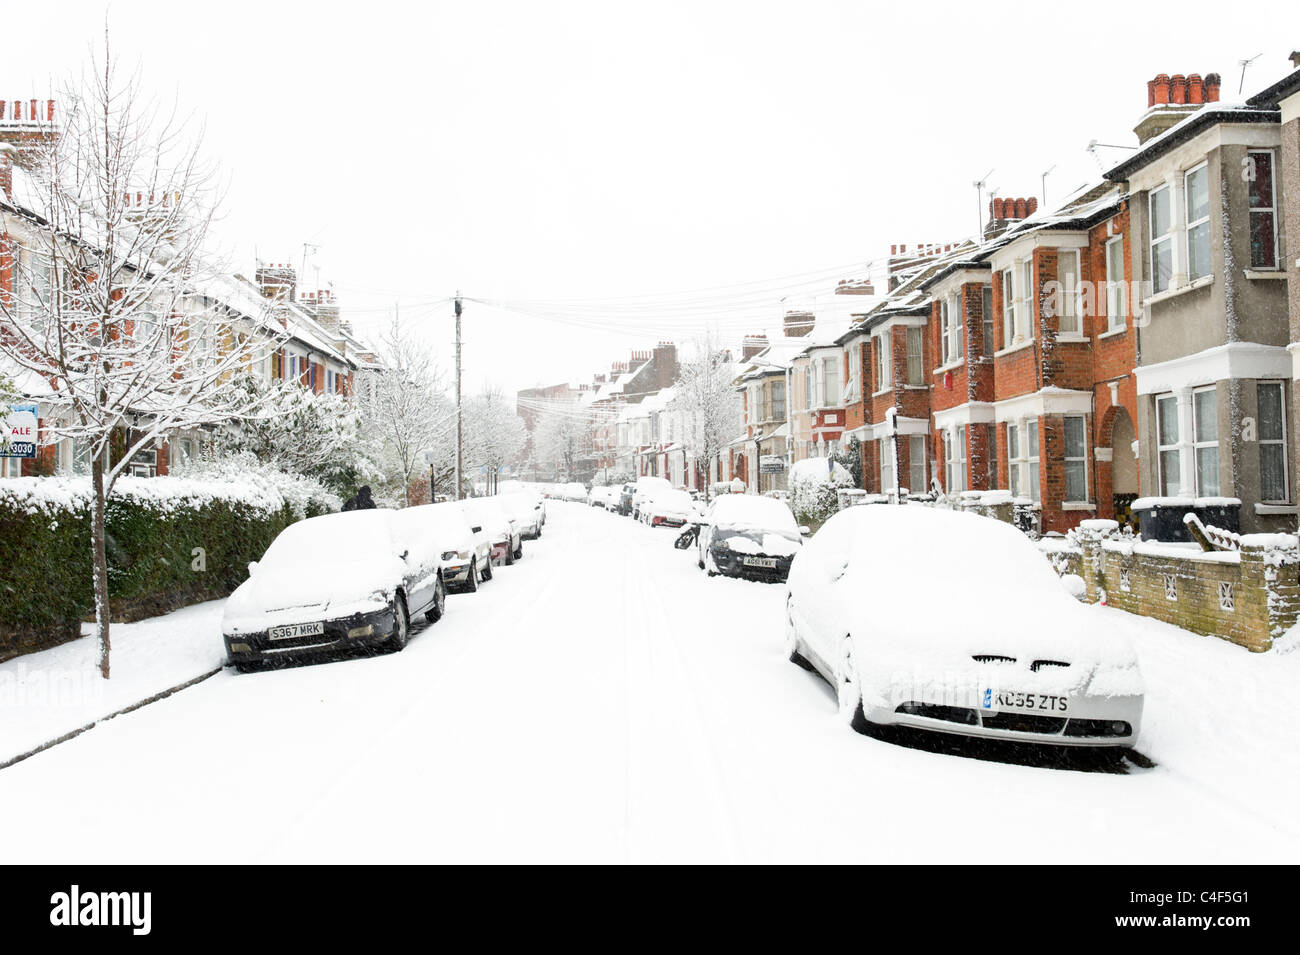 Snow covered cars in residential street, London, UK - Stock Image